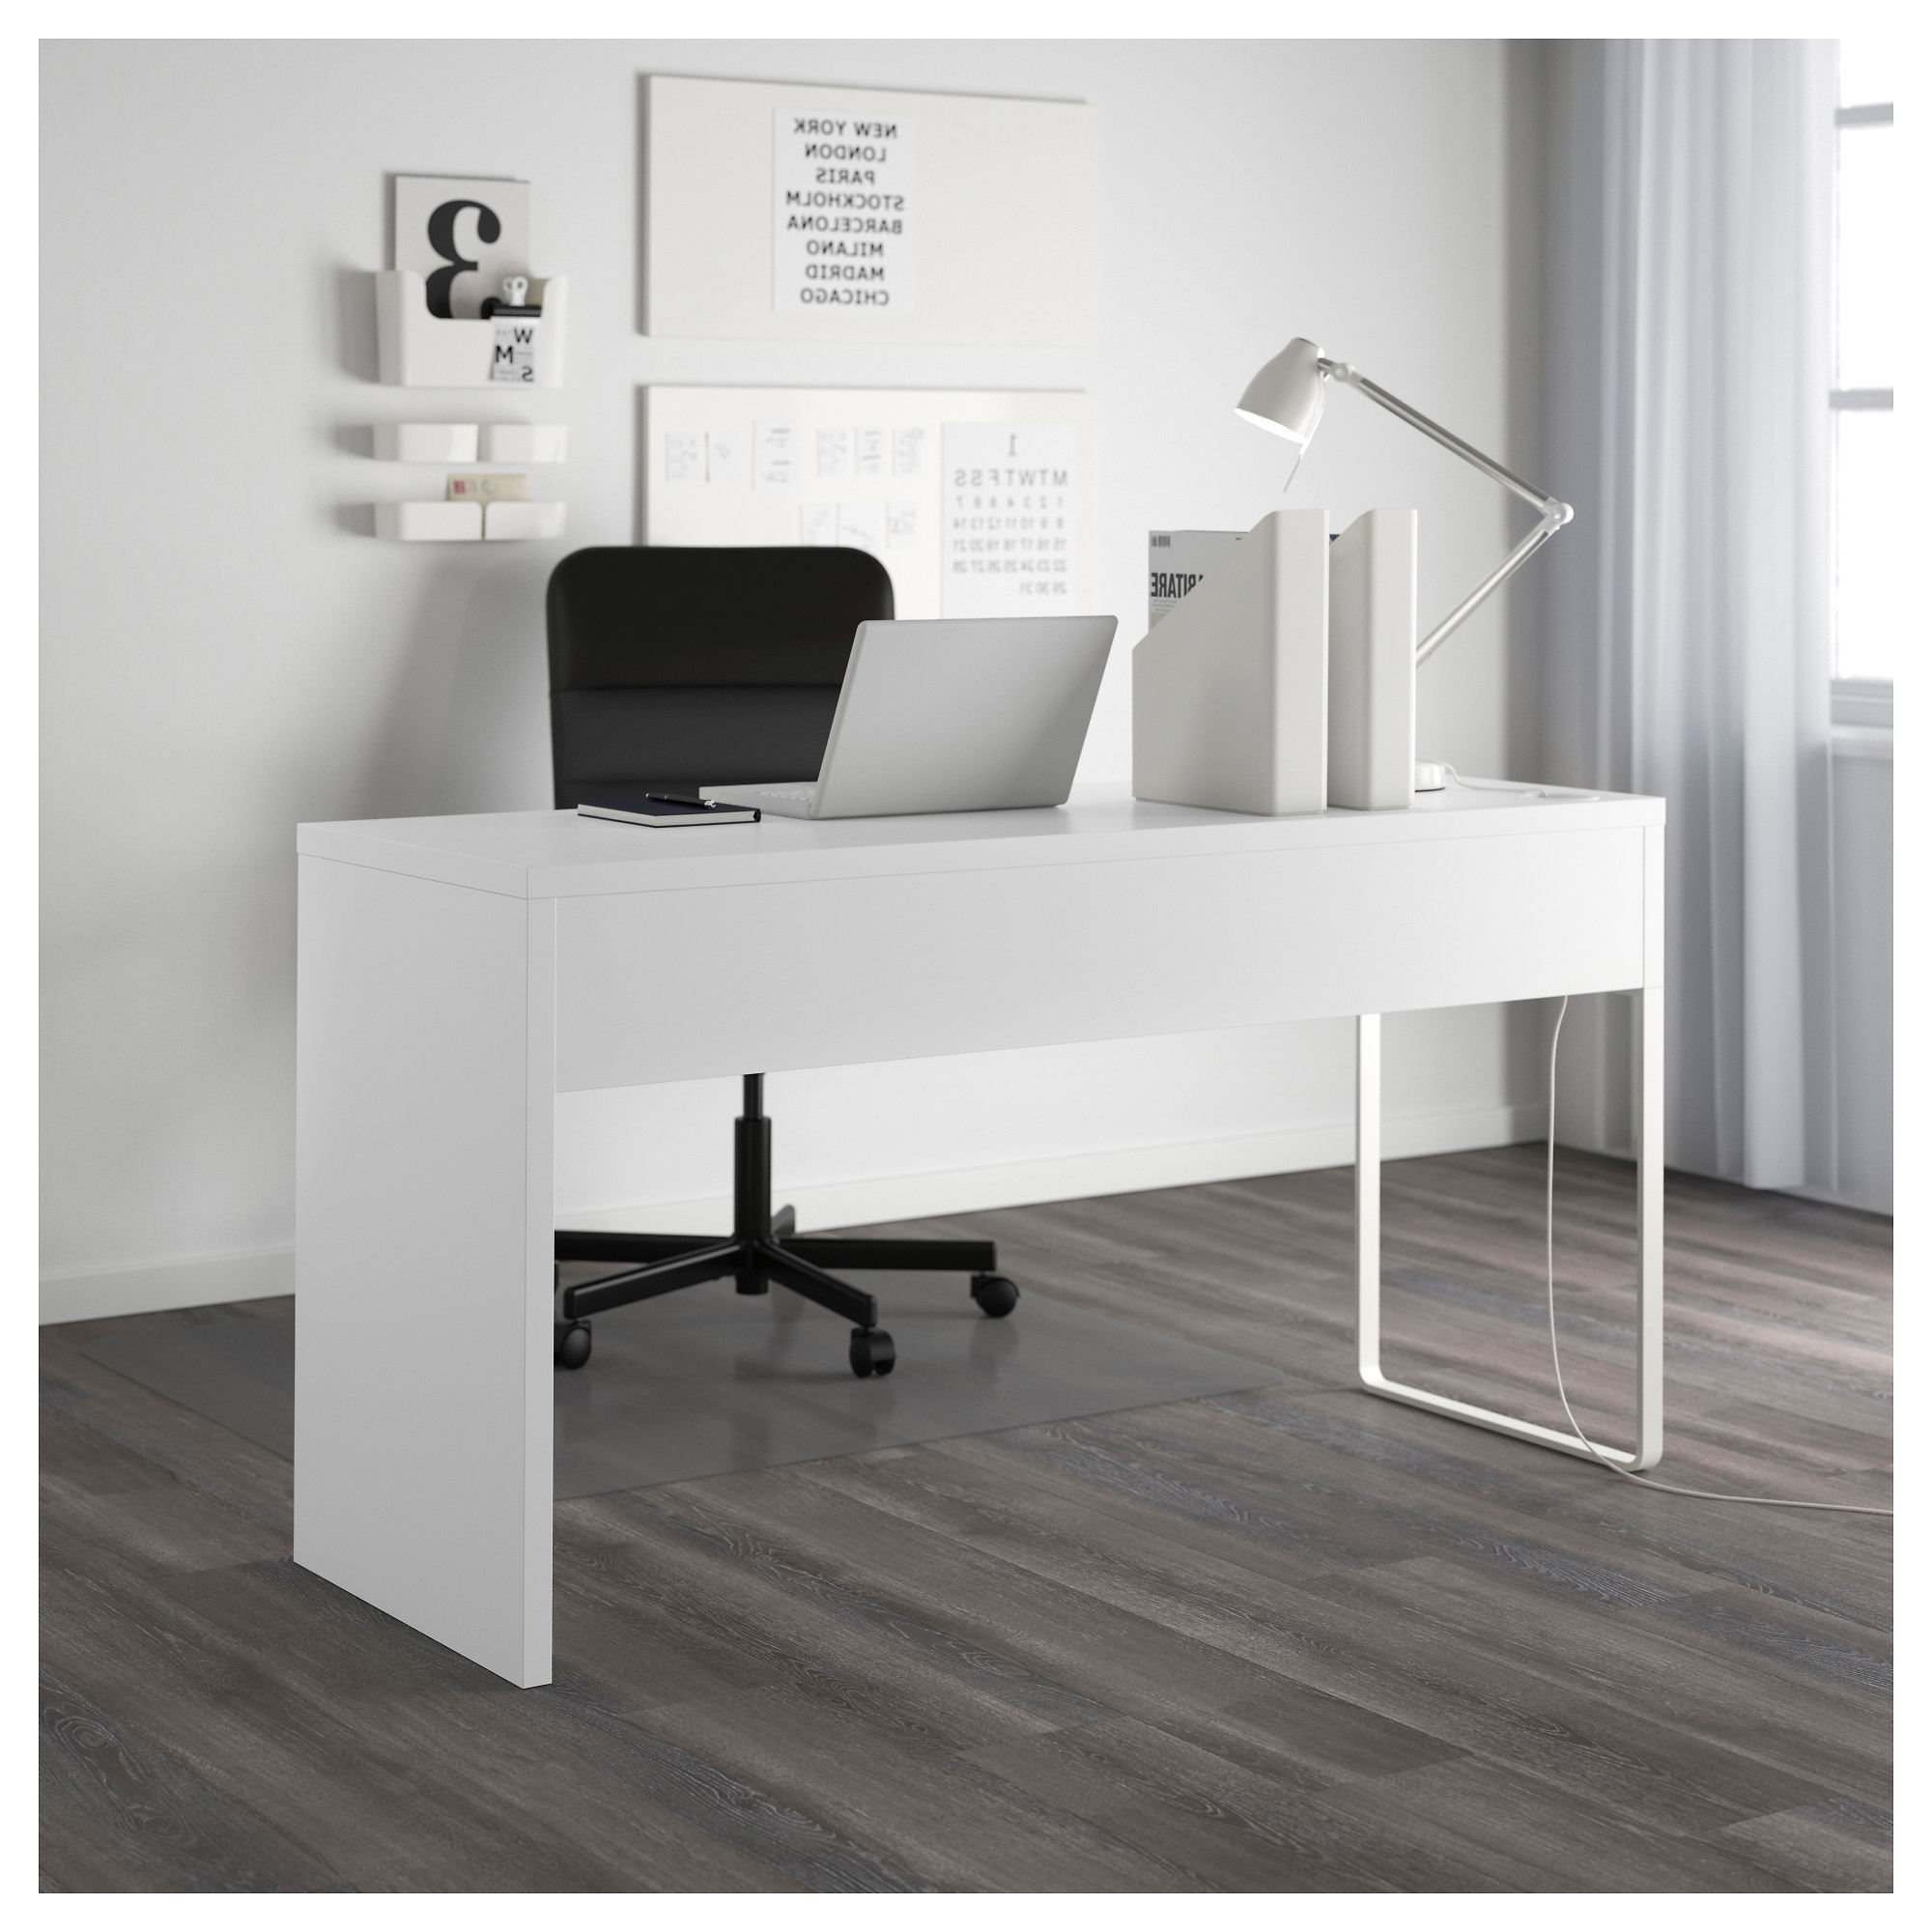 Most Up To Date Computer Desks In White Throughout Micke Desk – White – Ikea (View 5 of 20)